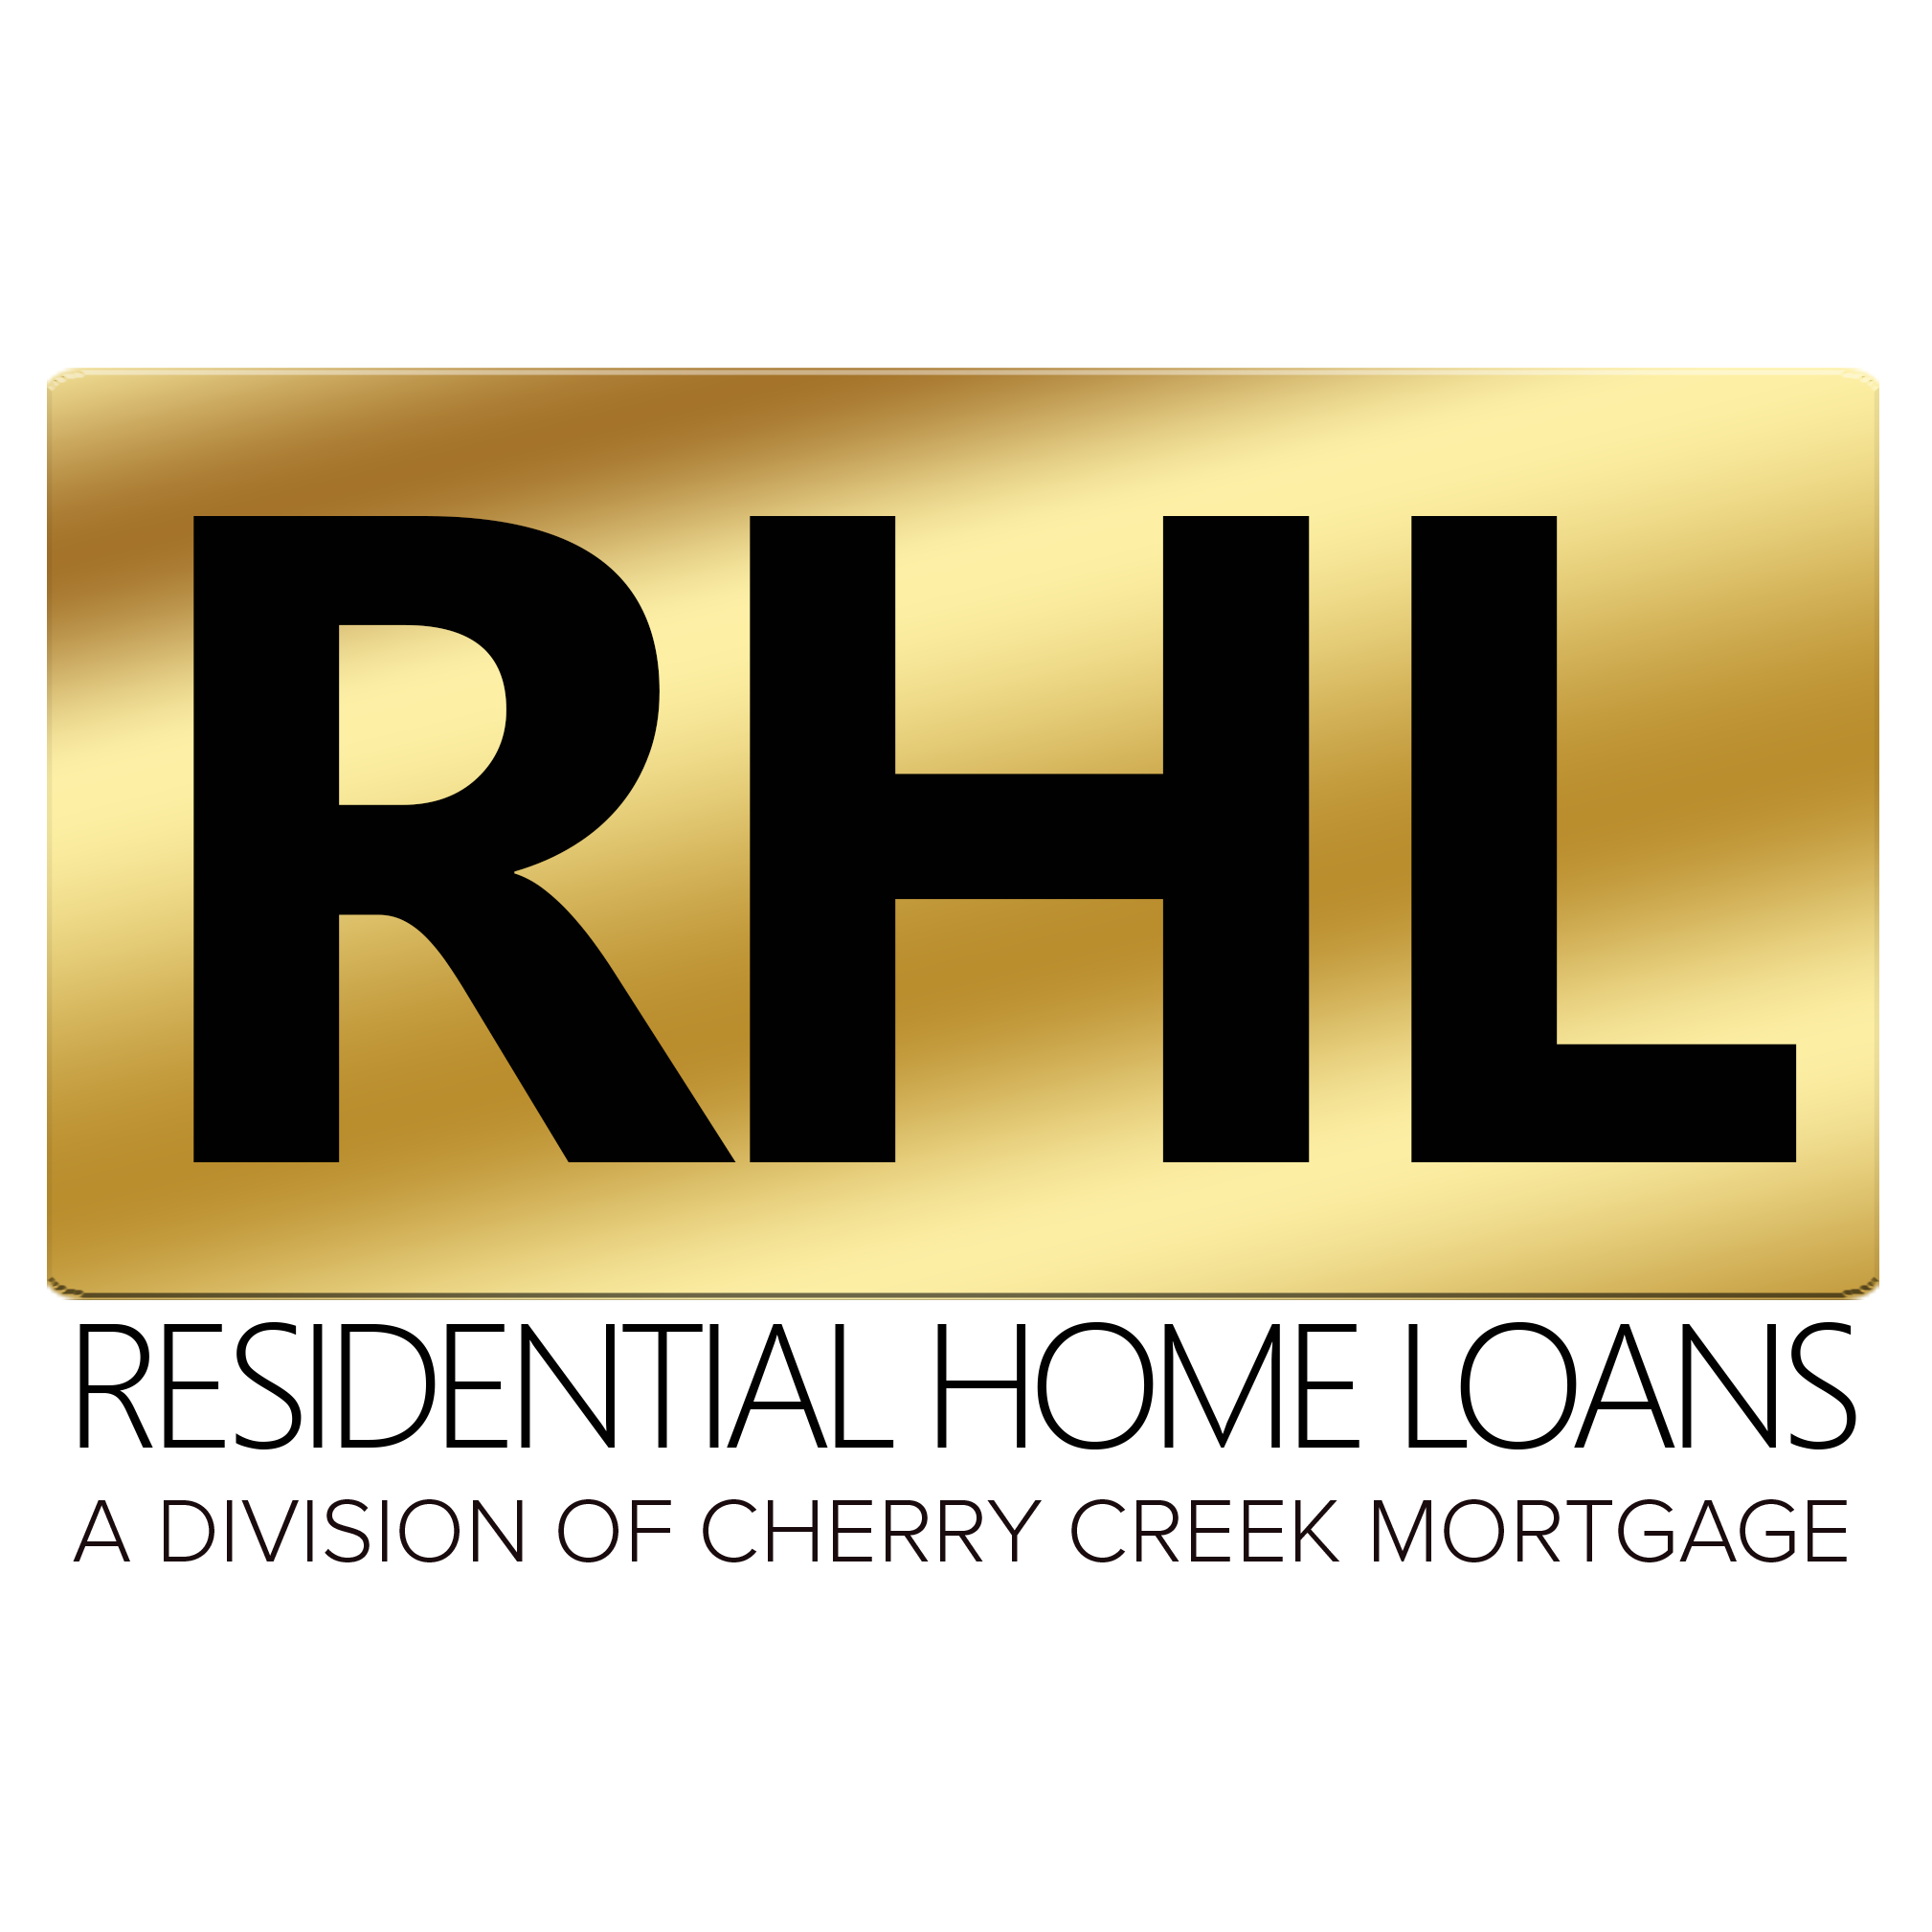 Residential Home Loans, Stephani Robertson, NMLS #148699 - Citrus Heights, CA 95610 - (916)952-5626 | ShowMeLocal.com